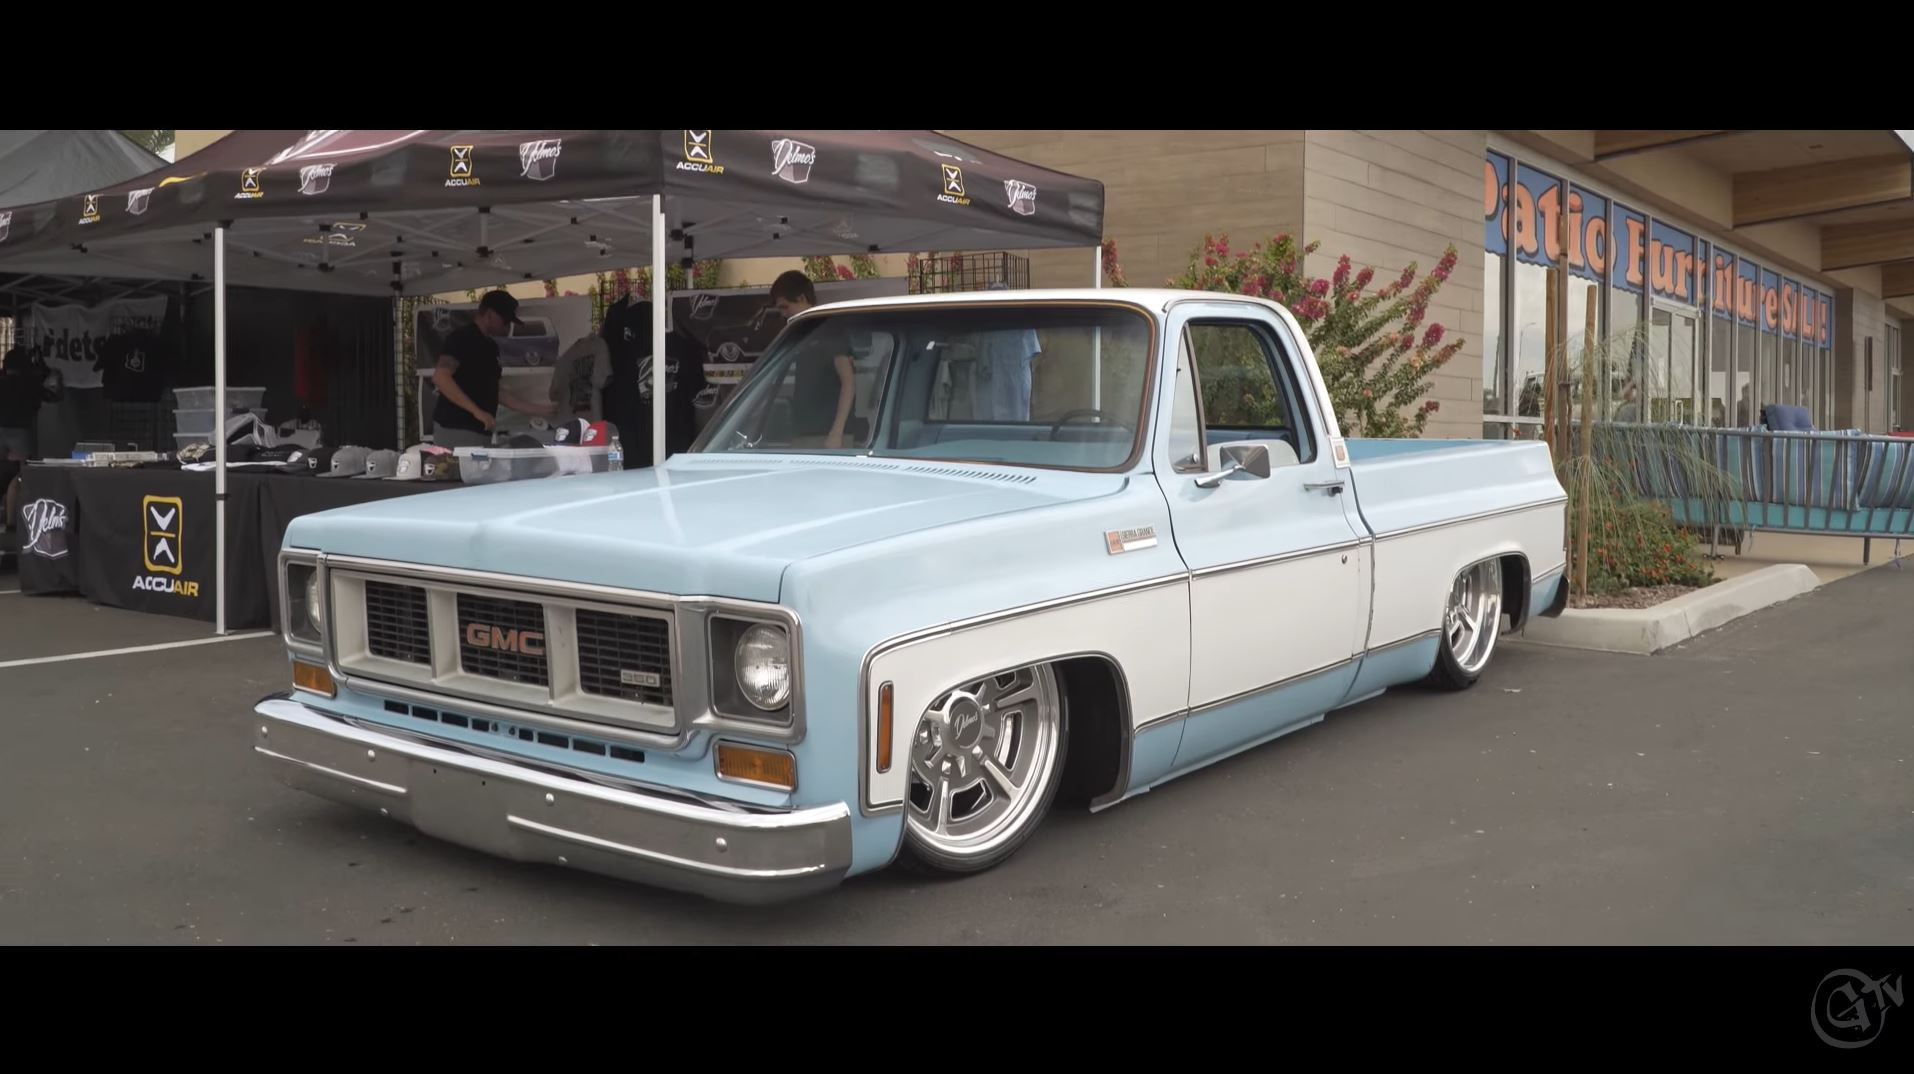 Dino's Gitdown 2017 Is GM Truck Heaven. Thank The Grinder TV Guys For Killer Coverage